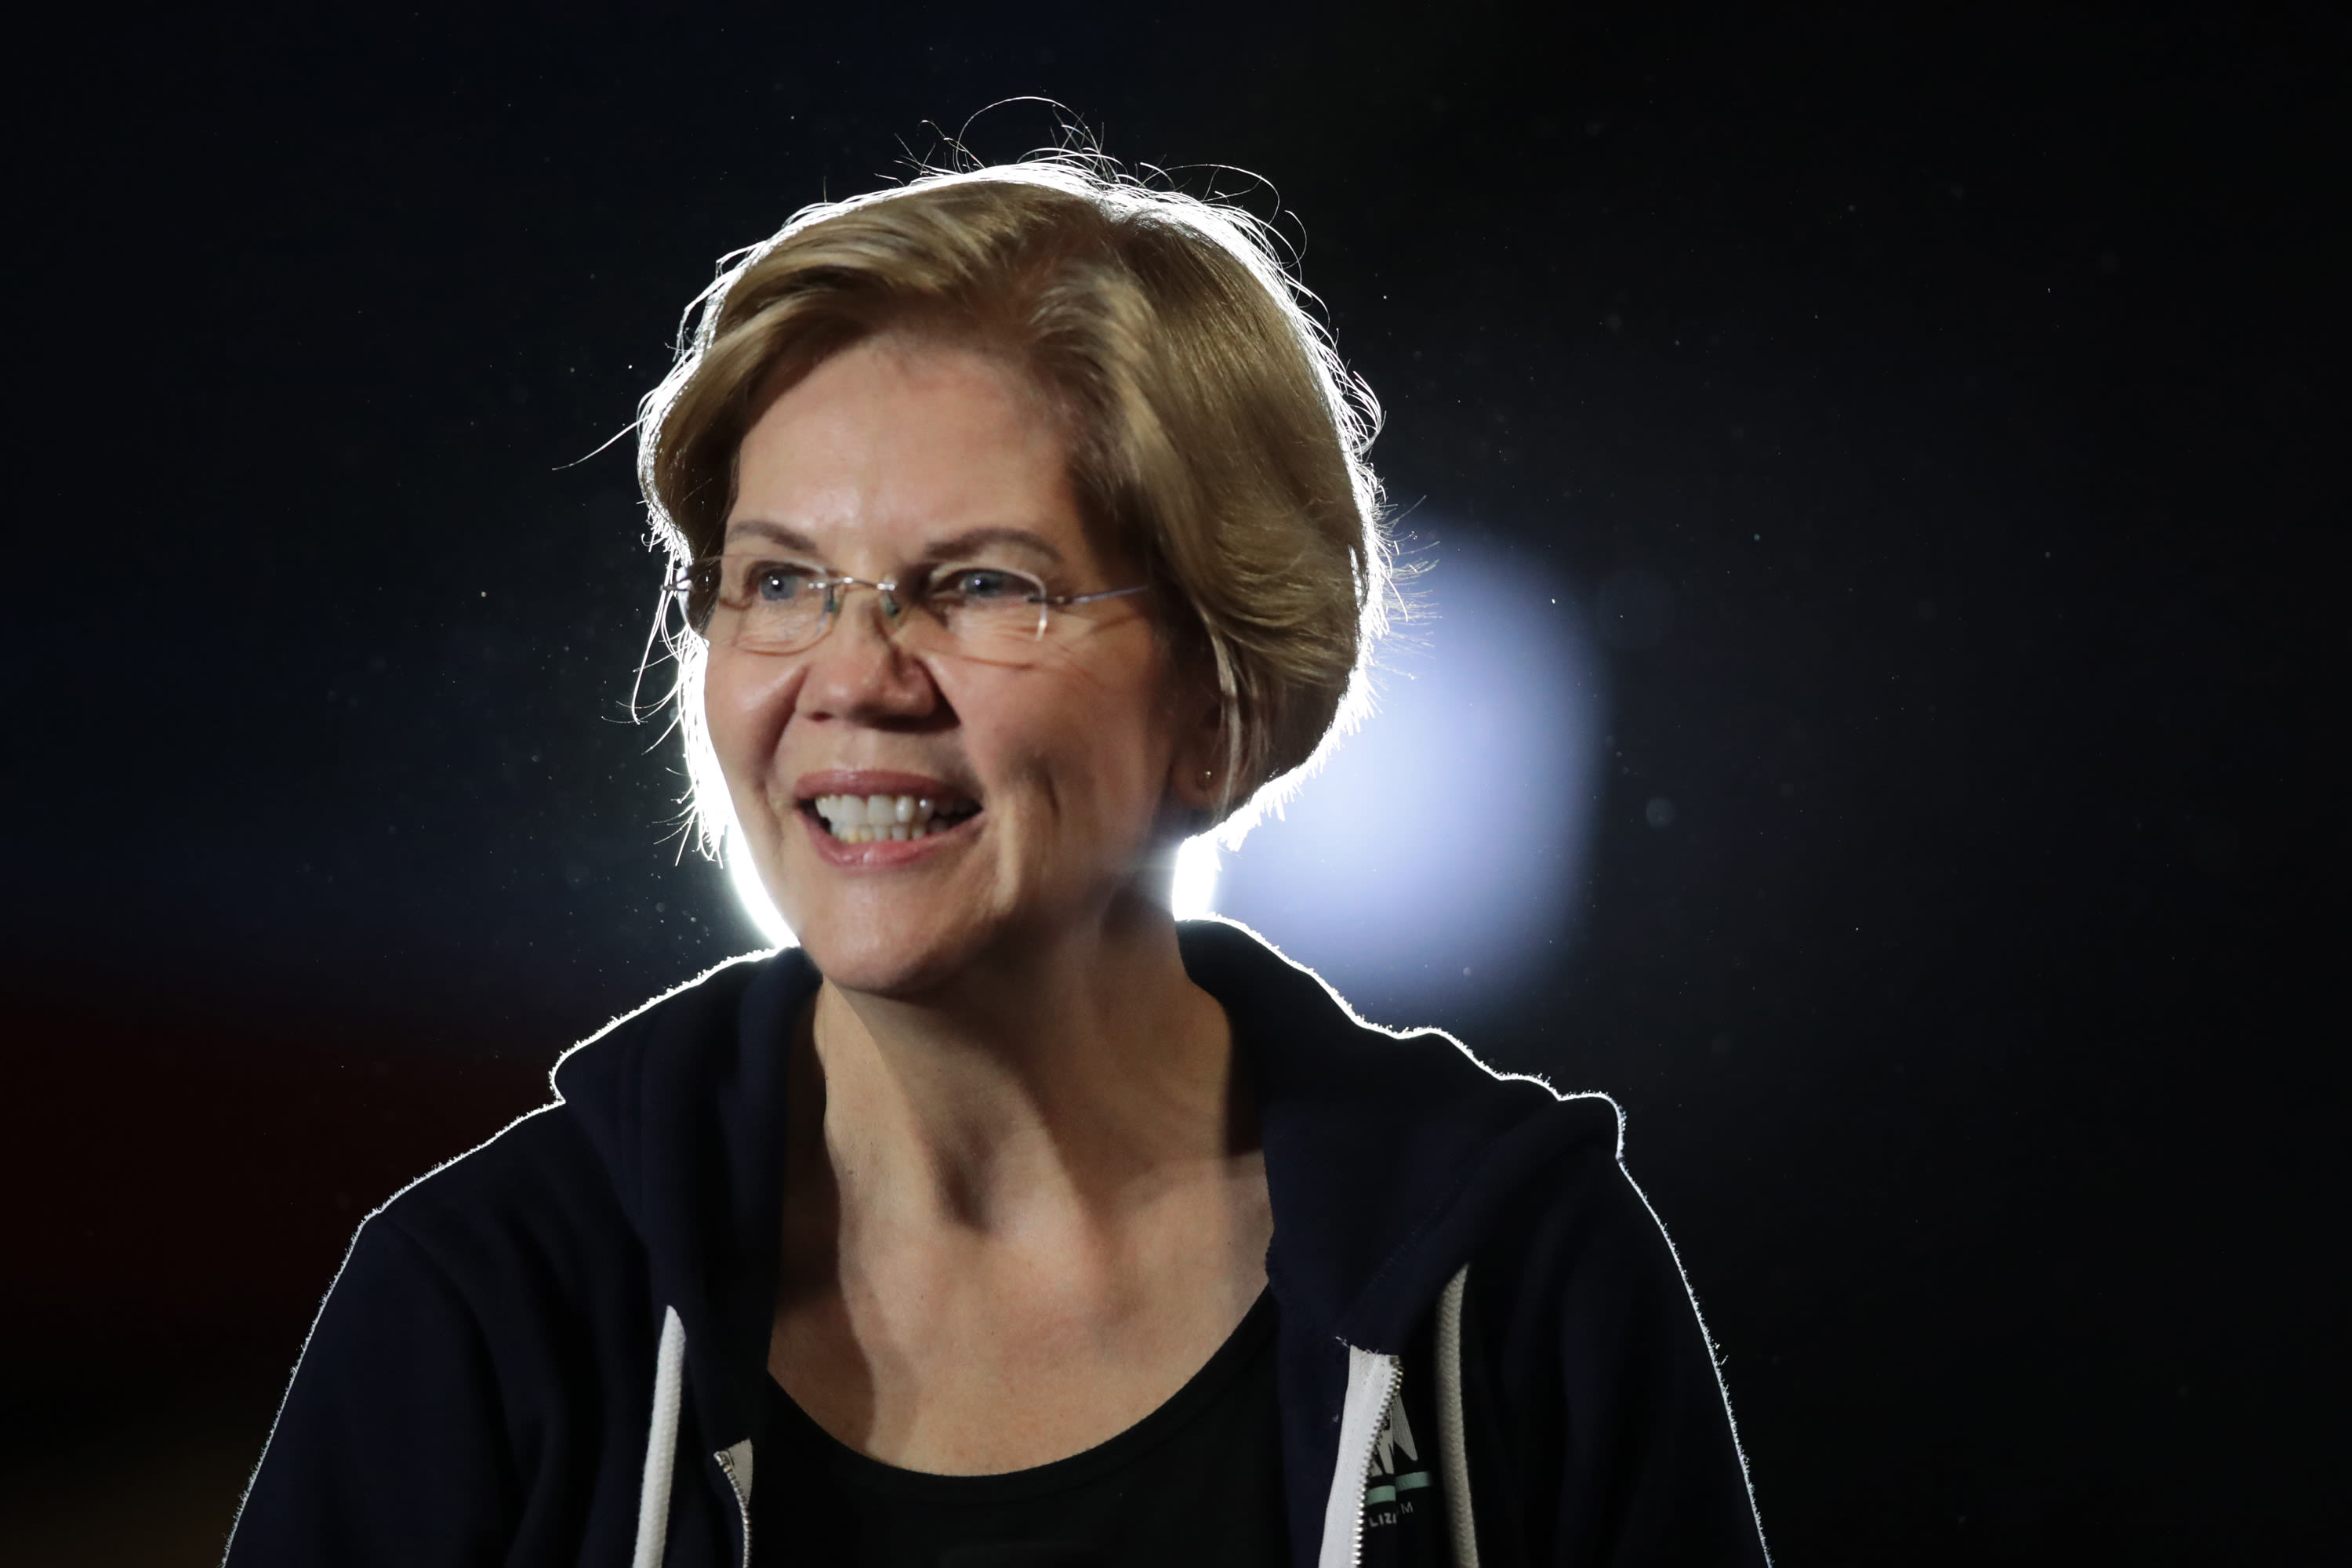 Elizabeth Warren releases doctor's note describing good health as voters weigh ages of 2020 presidential contenders